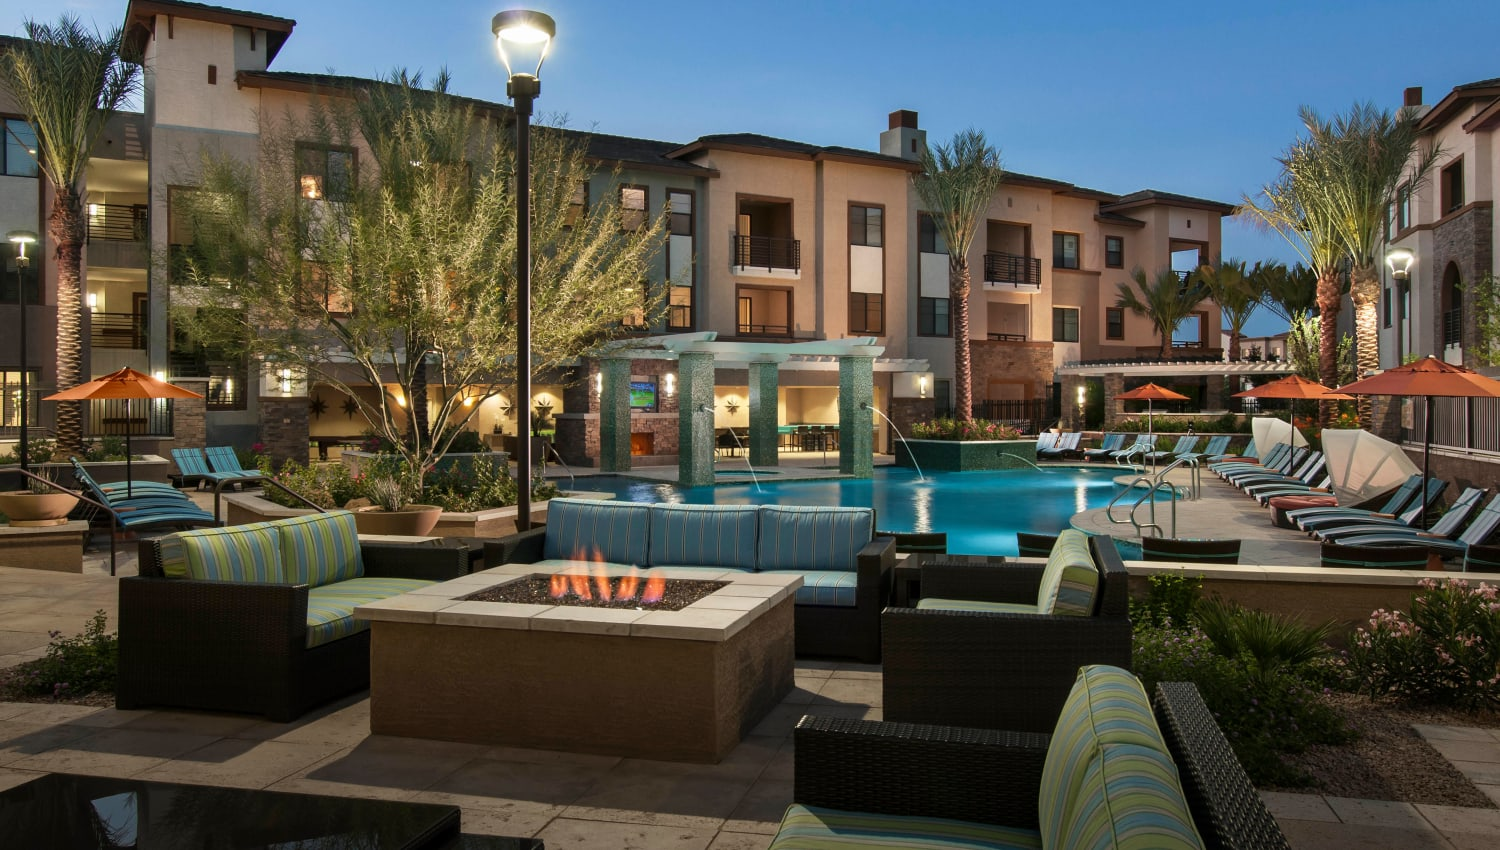 Fire pit lounge area at twilight at Redstone at SanTan Village in Gilbert, Arizona